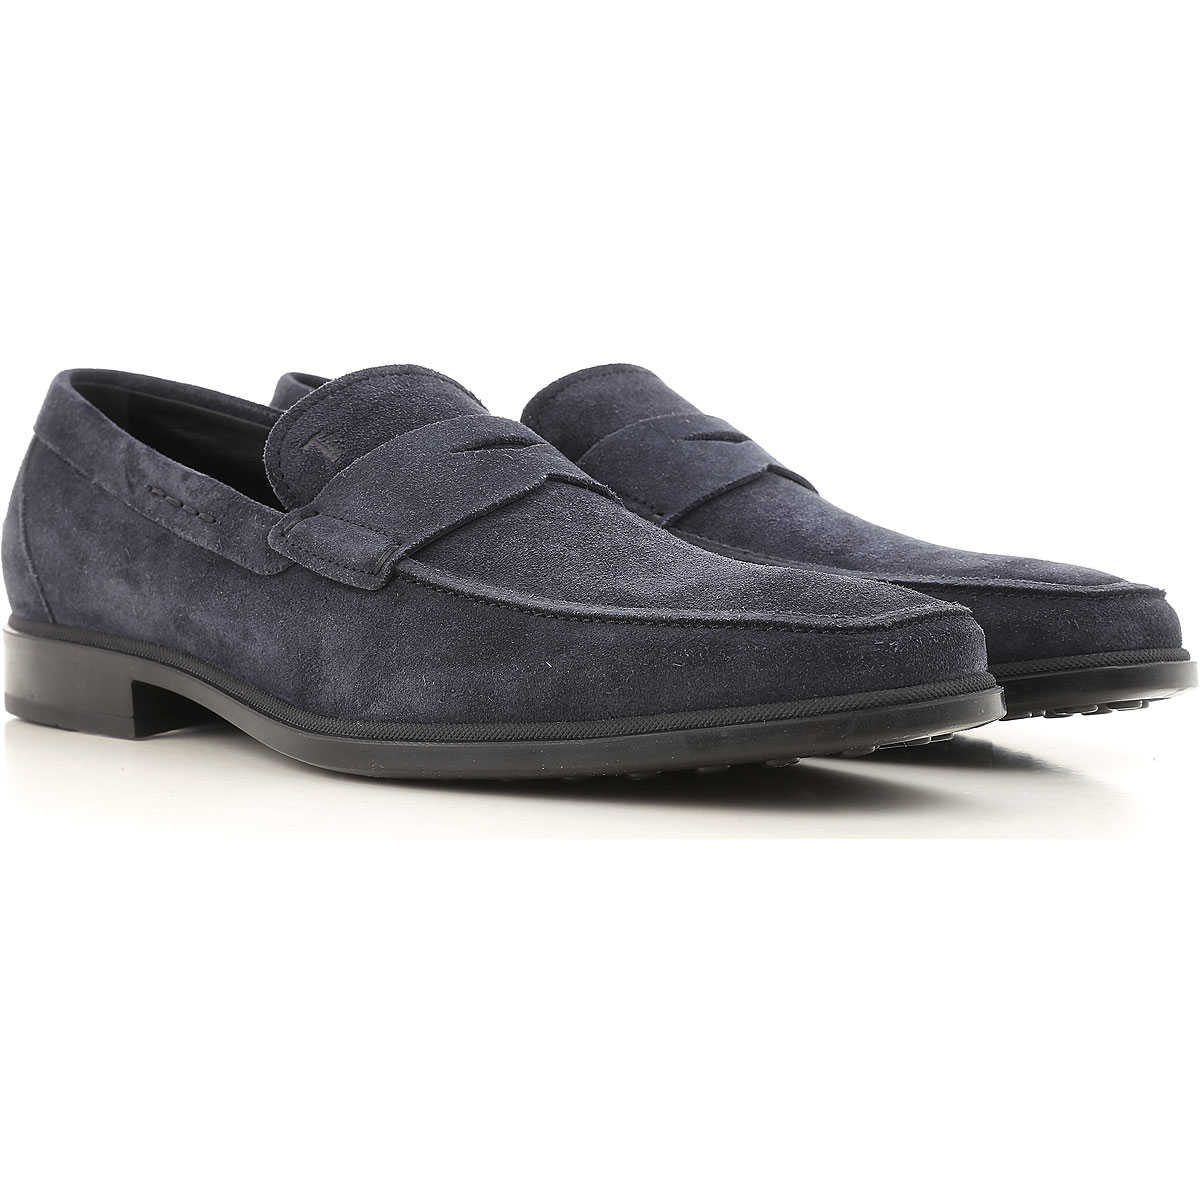 Tods Loafers for Men Midnight USA - GOOFASH